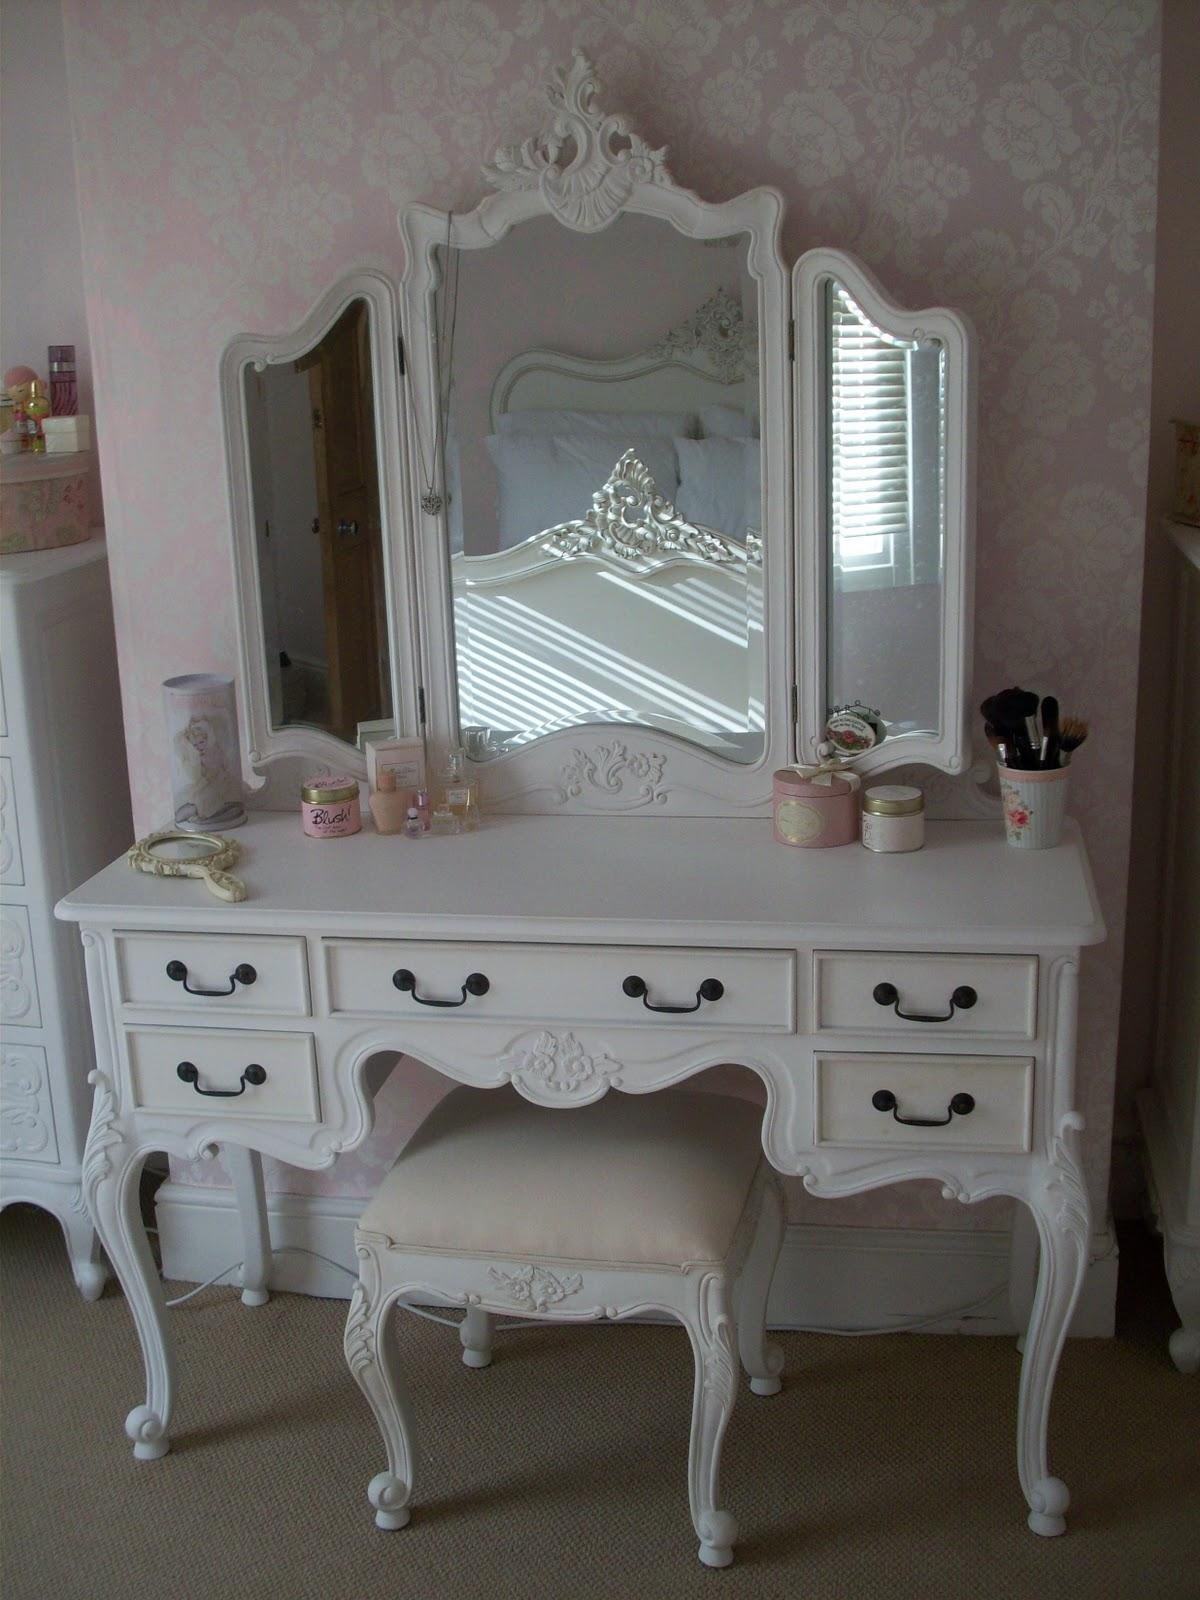 Antique Free Standing Dresser Mirror ~ Bestdressers 2017 With White Antique Mirrors (View 20 of 20)